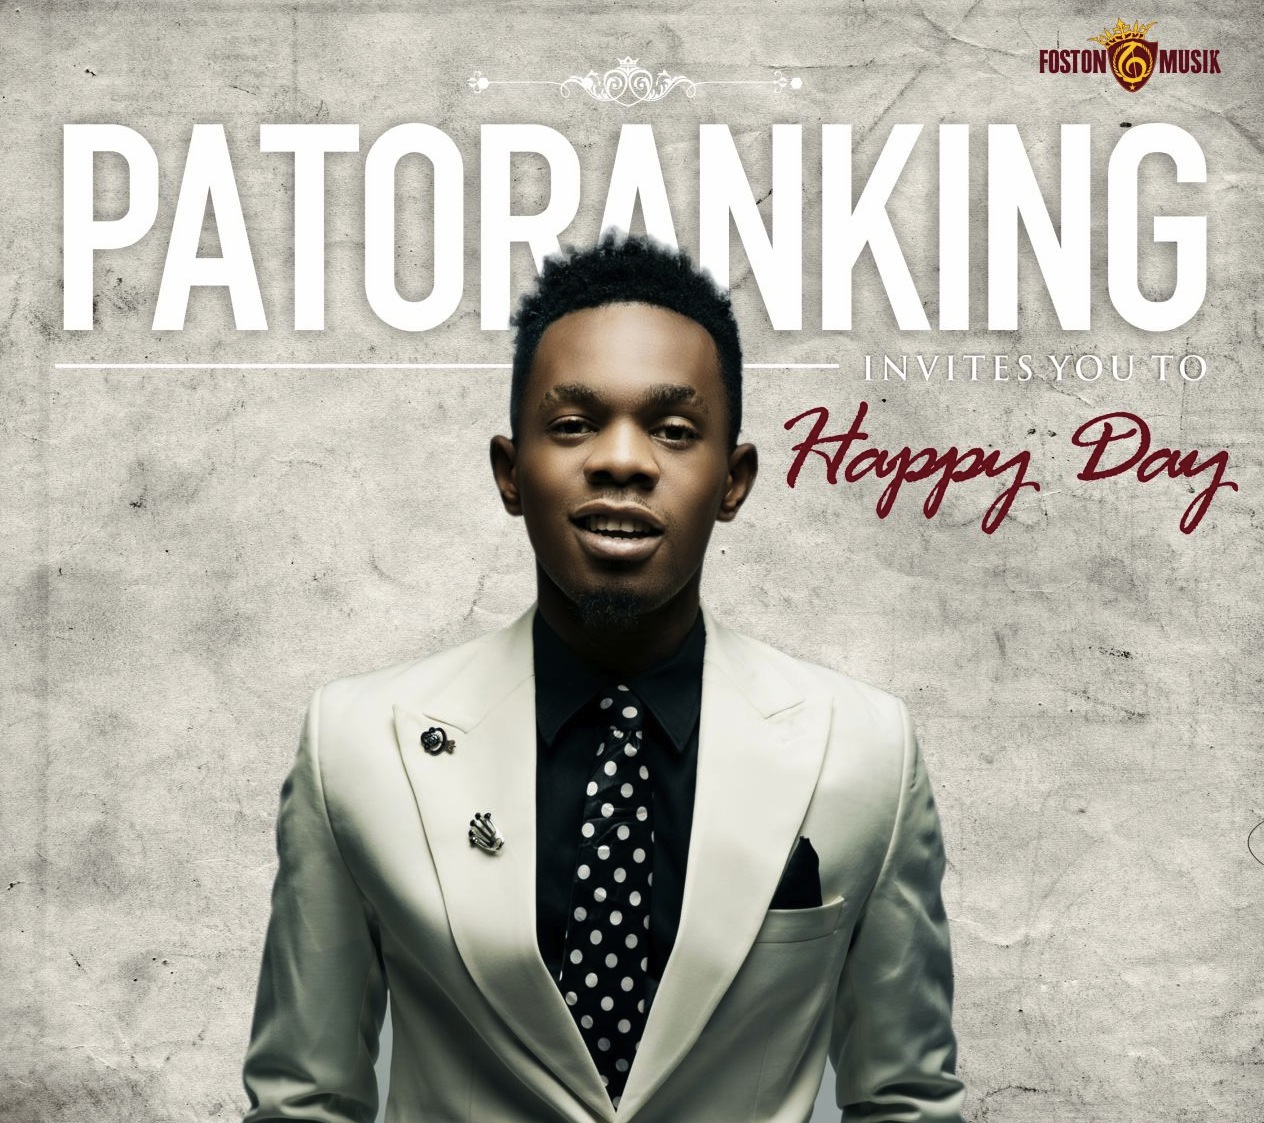 http://notjustok.com/wp-content/uploads/2014/09/Patoranking-Happy-Day-Art.jpg